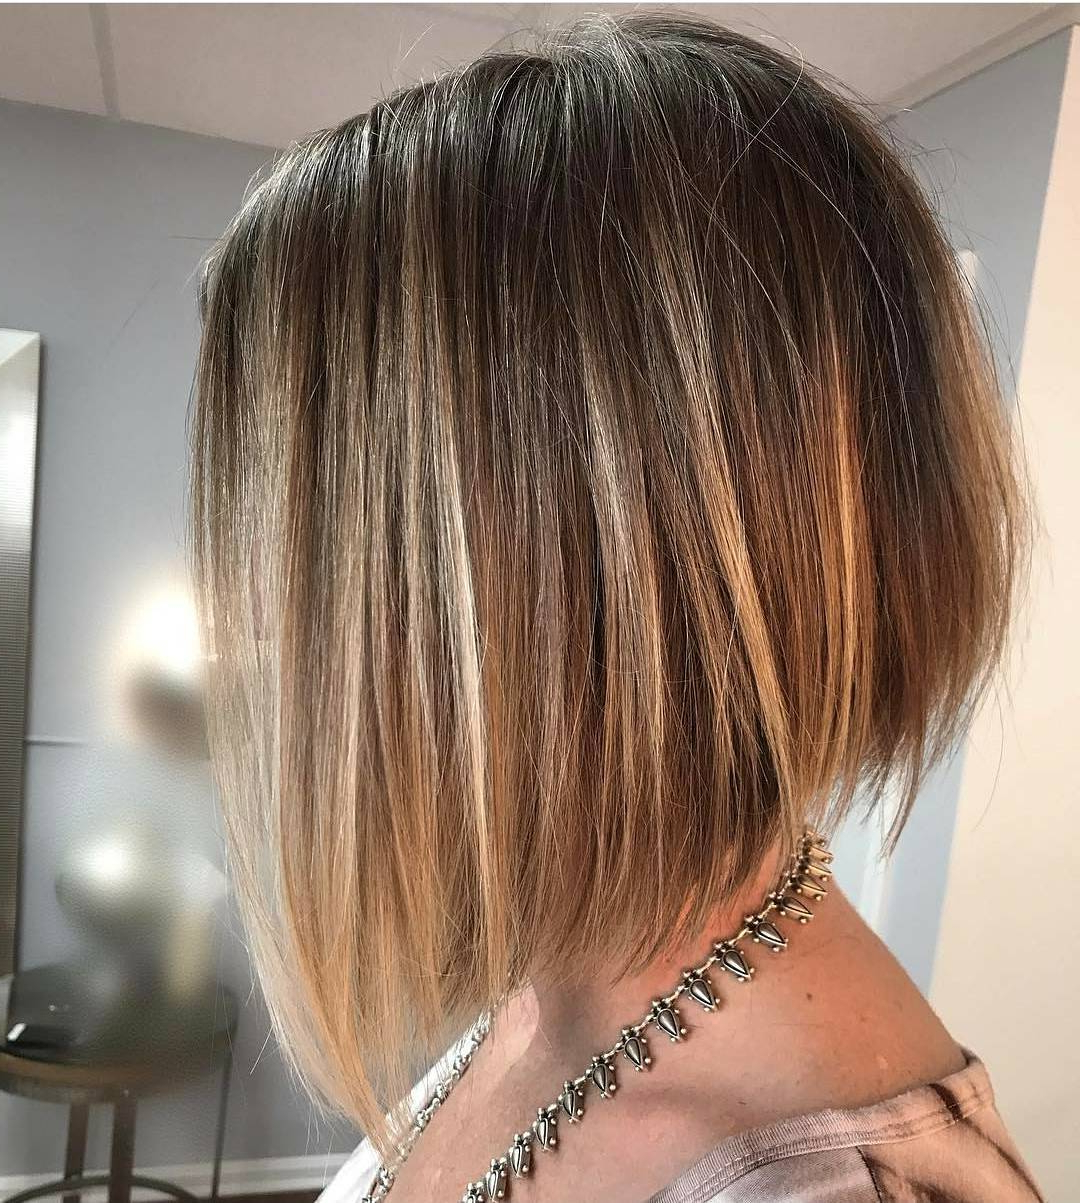 10 Flattering Short Straight Hairstyles 2019 Intended For Neat Short Rounded Bob Hairstyles For Straight Hair (View 2 of 20)